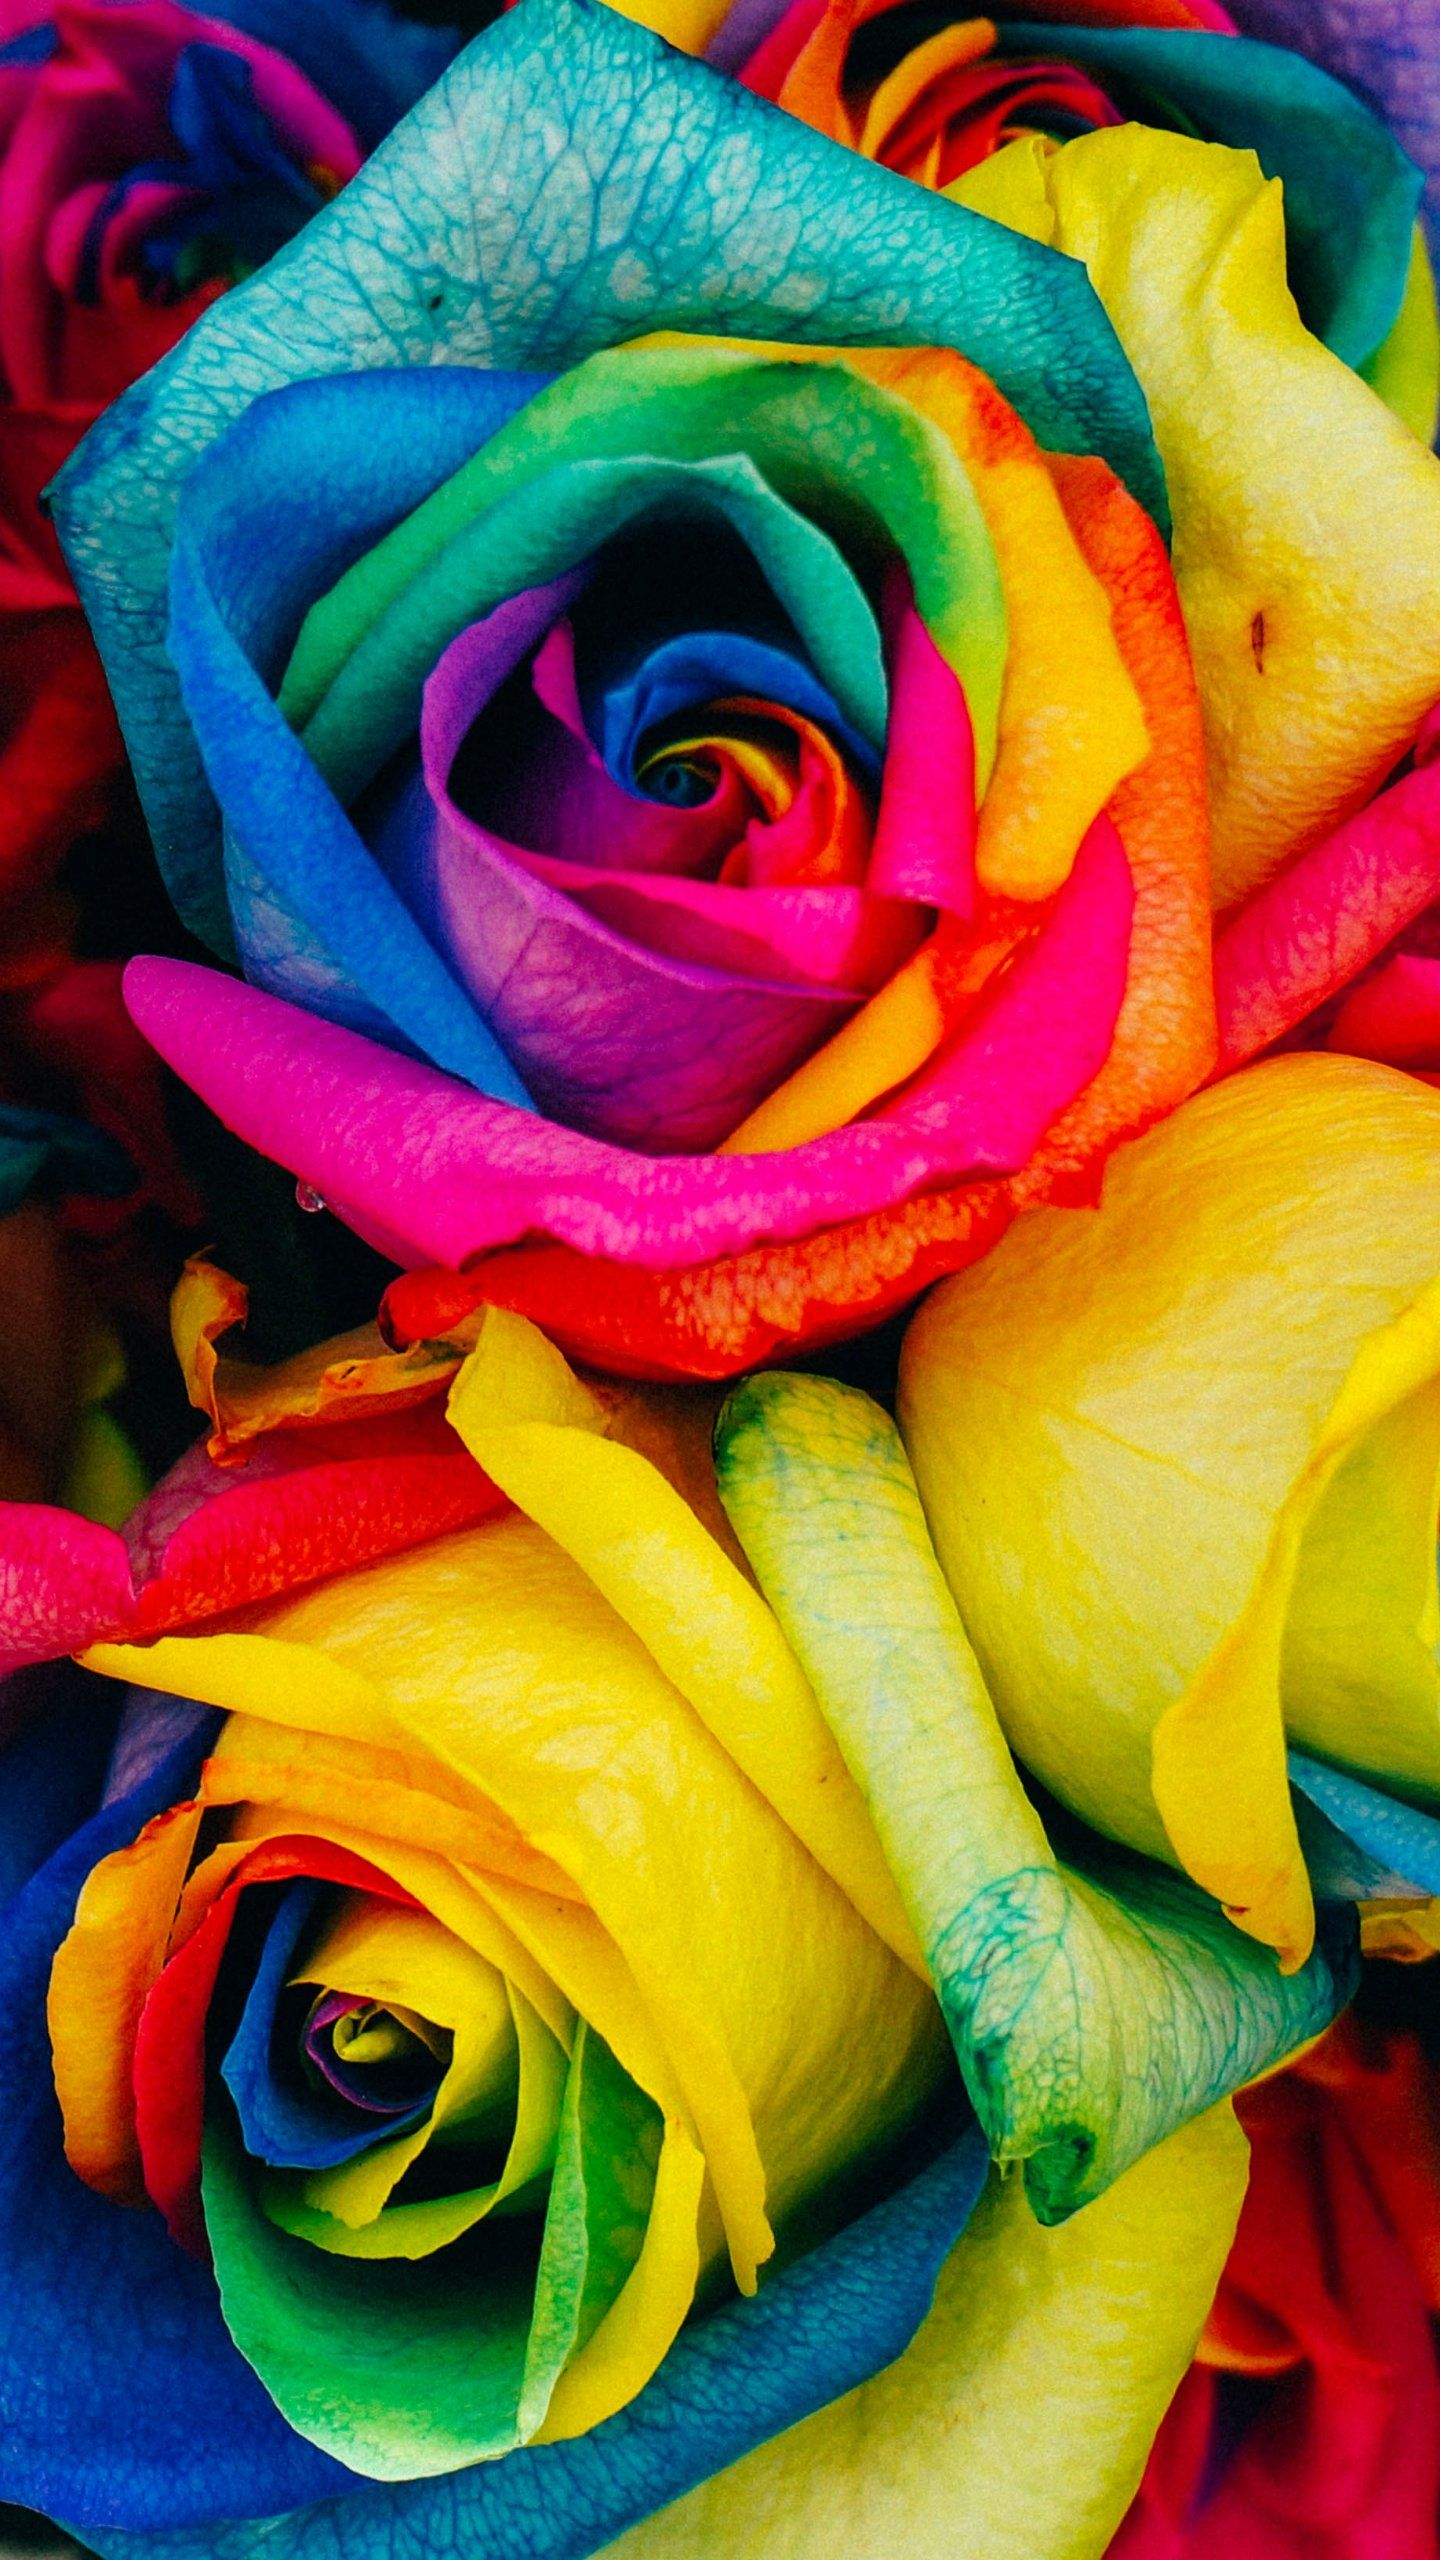 Rainbow Roses Wallpaper Iphone Android Desktop Backgrounds